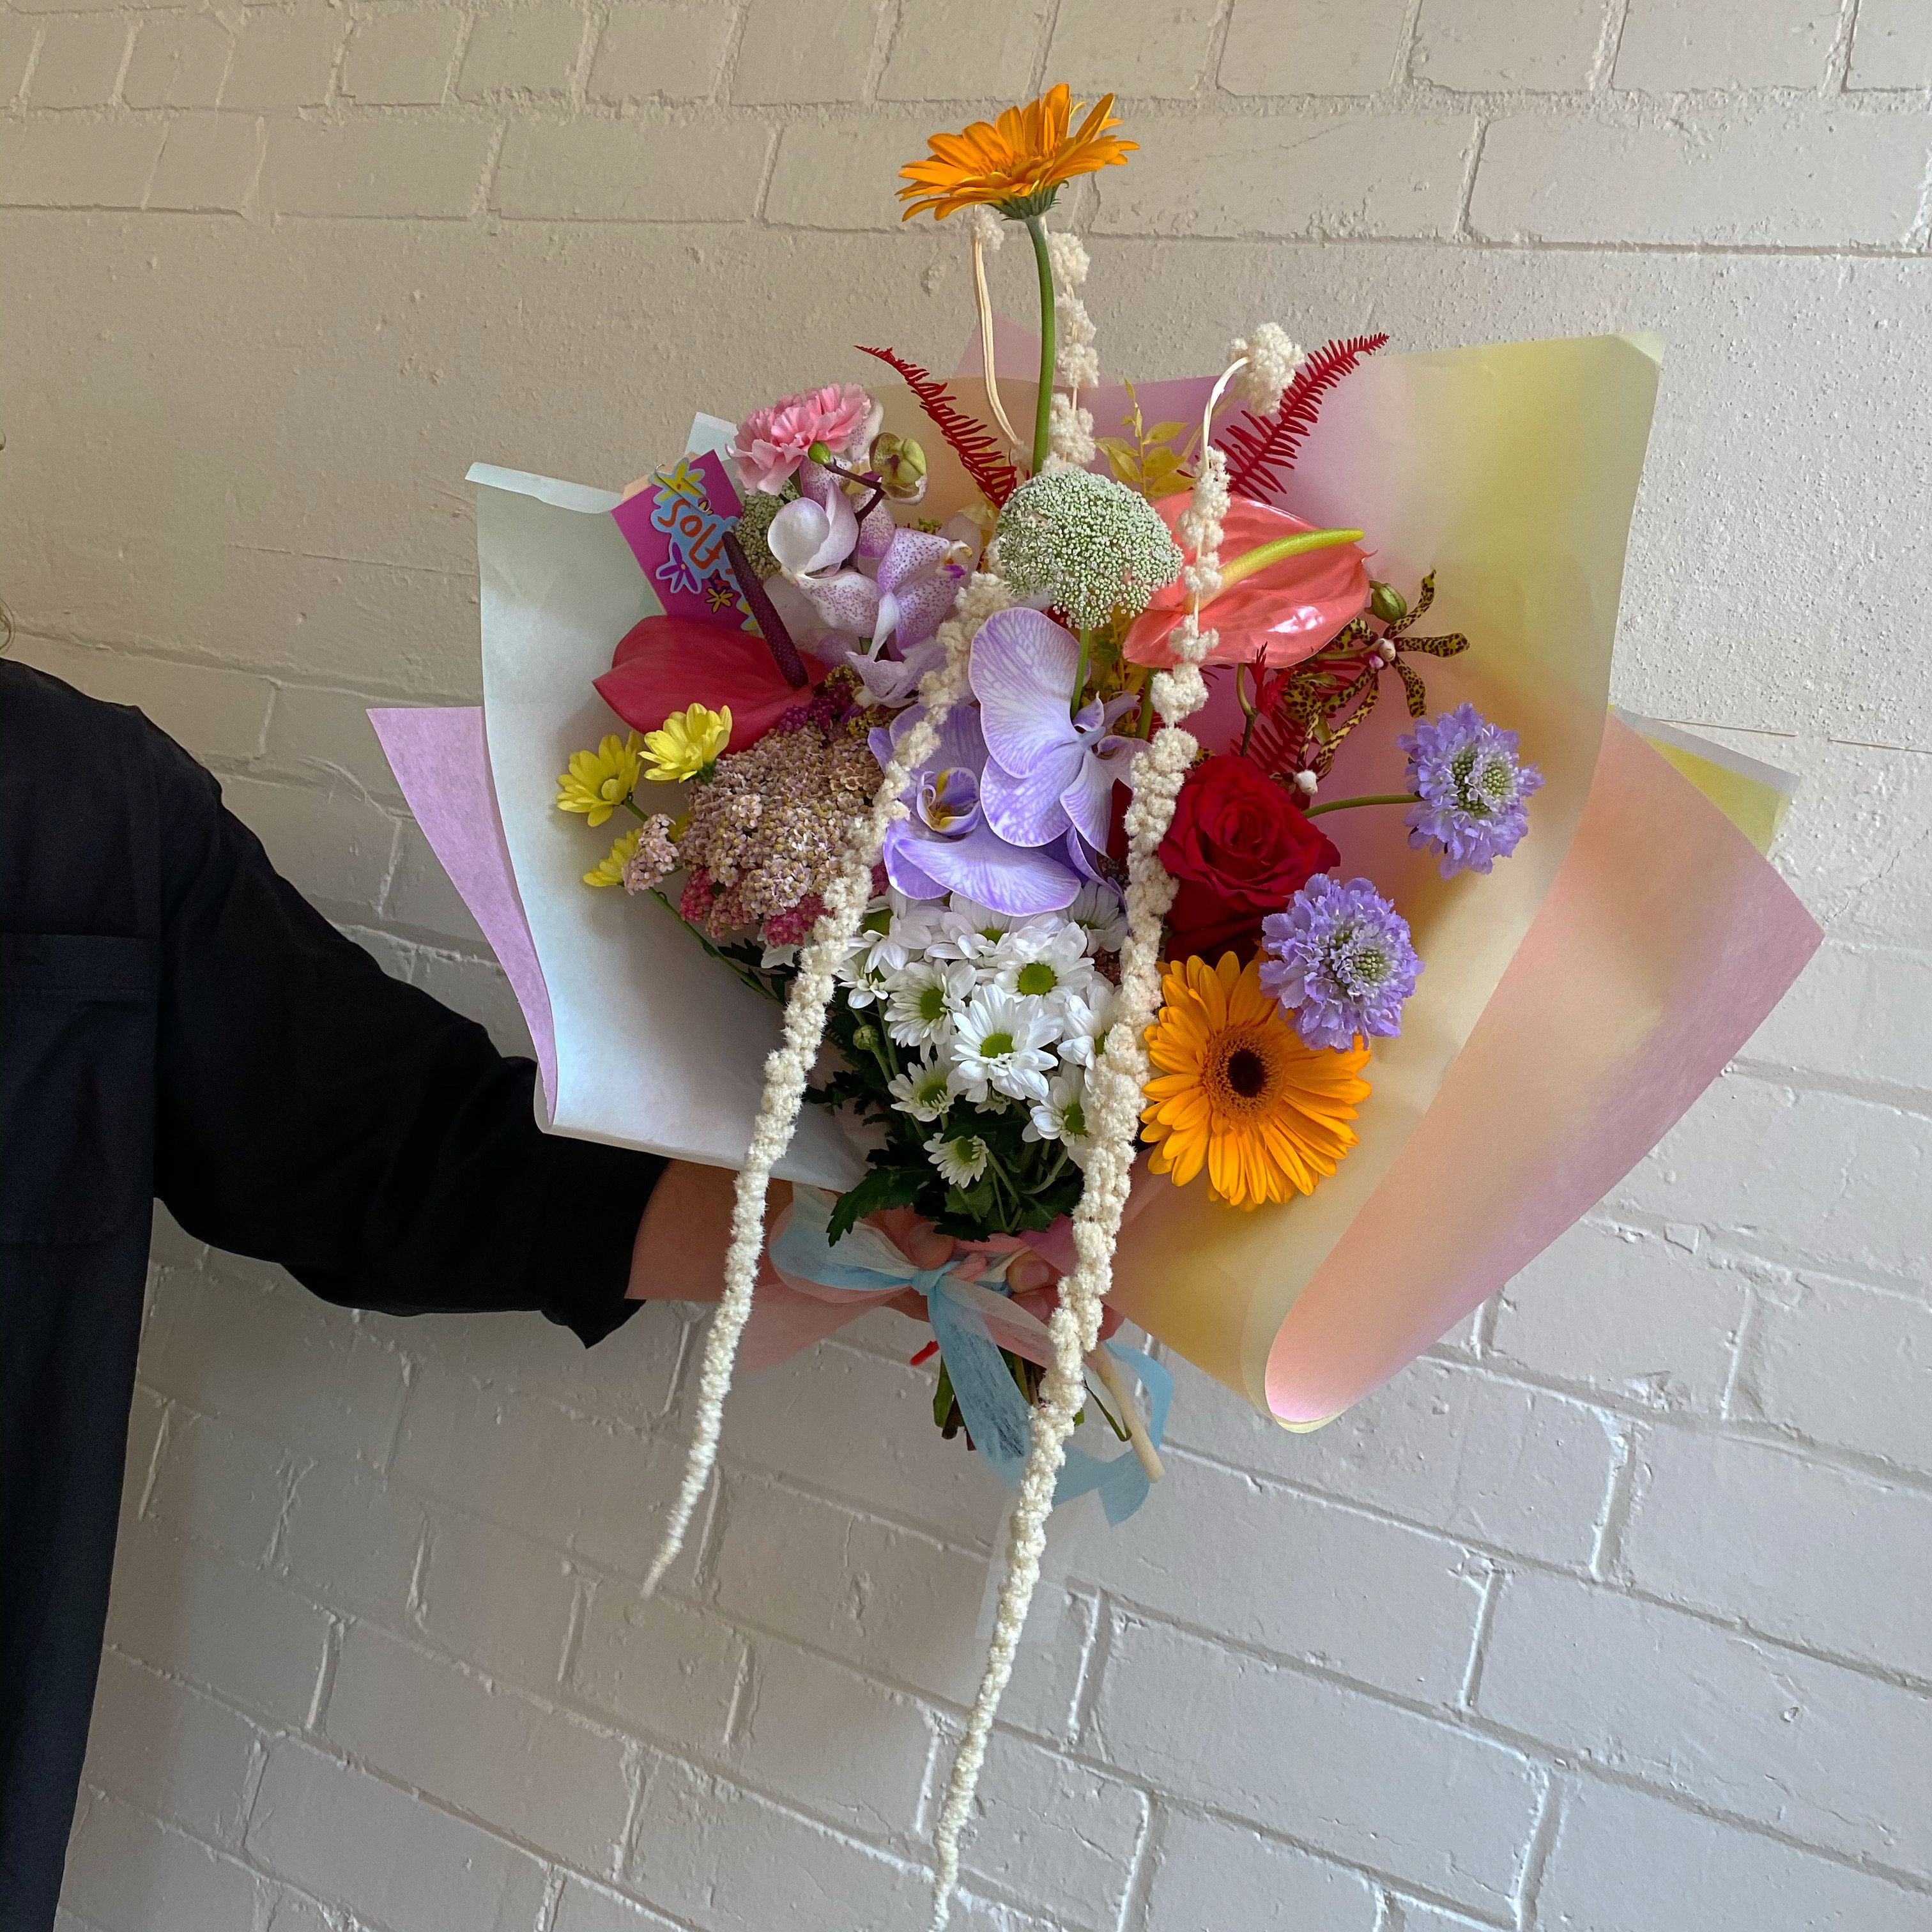 Colourful fresh and everlasting flowers by Melbourne Floral Artist xxflos